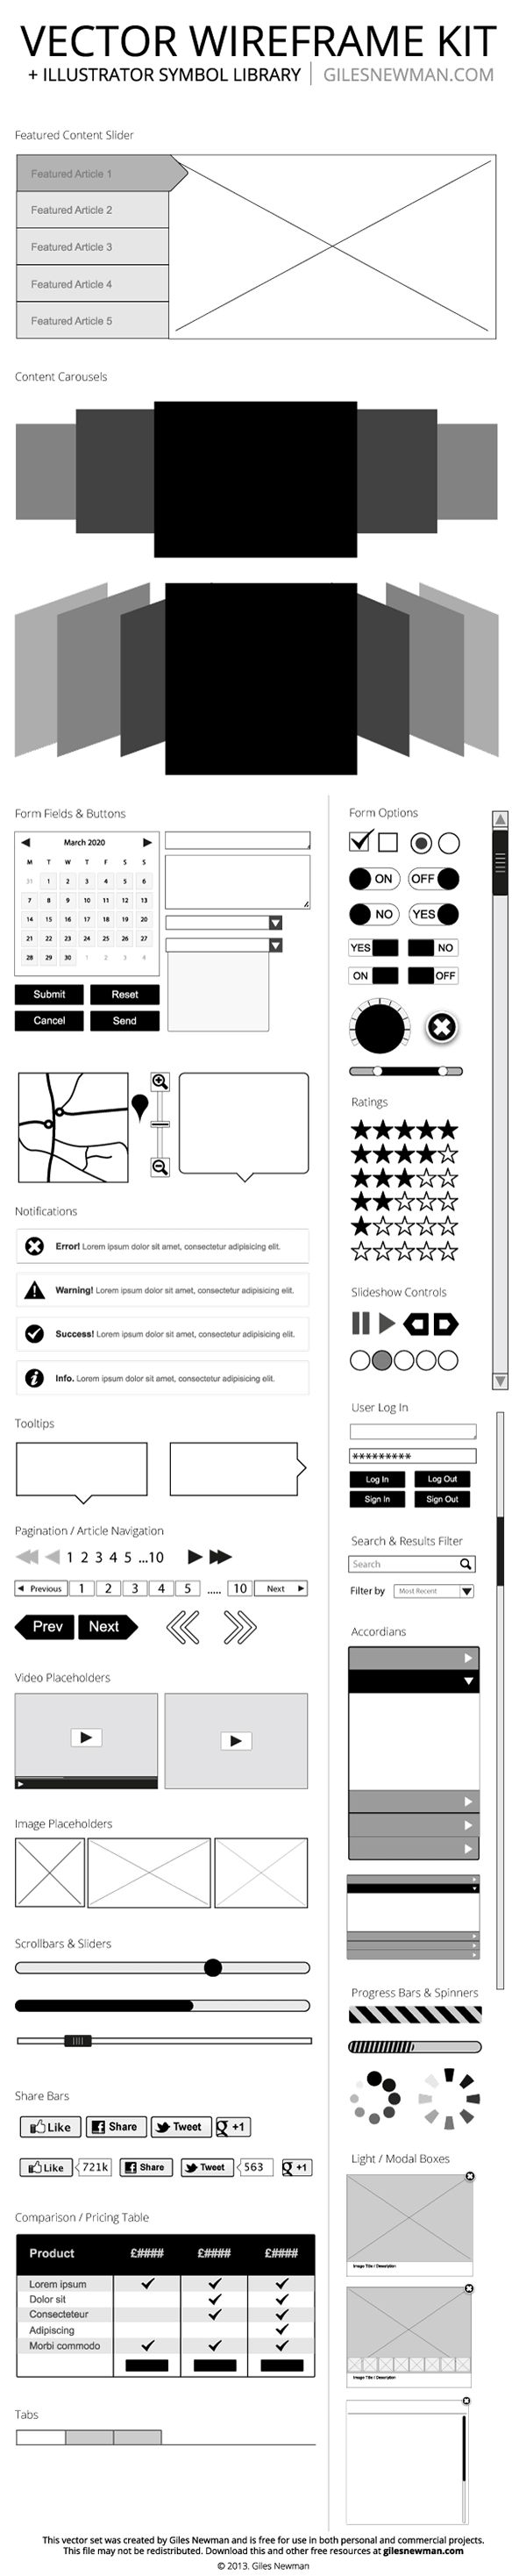 Top 15 Free Web Page Wireframe Kits for Web Designers & Developers#Wireframes development